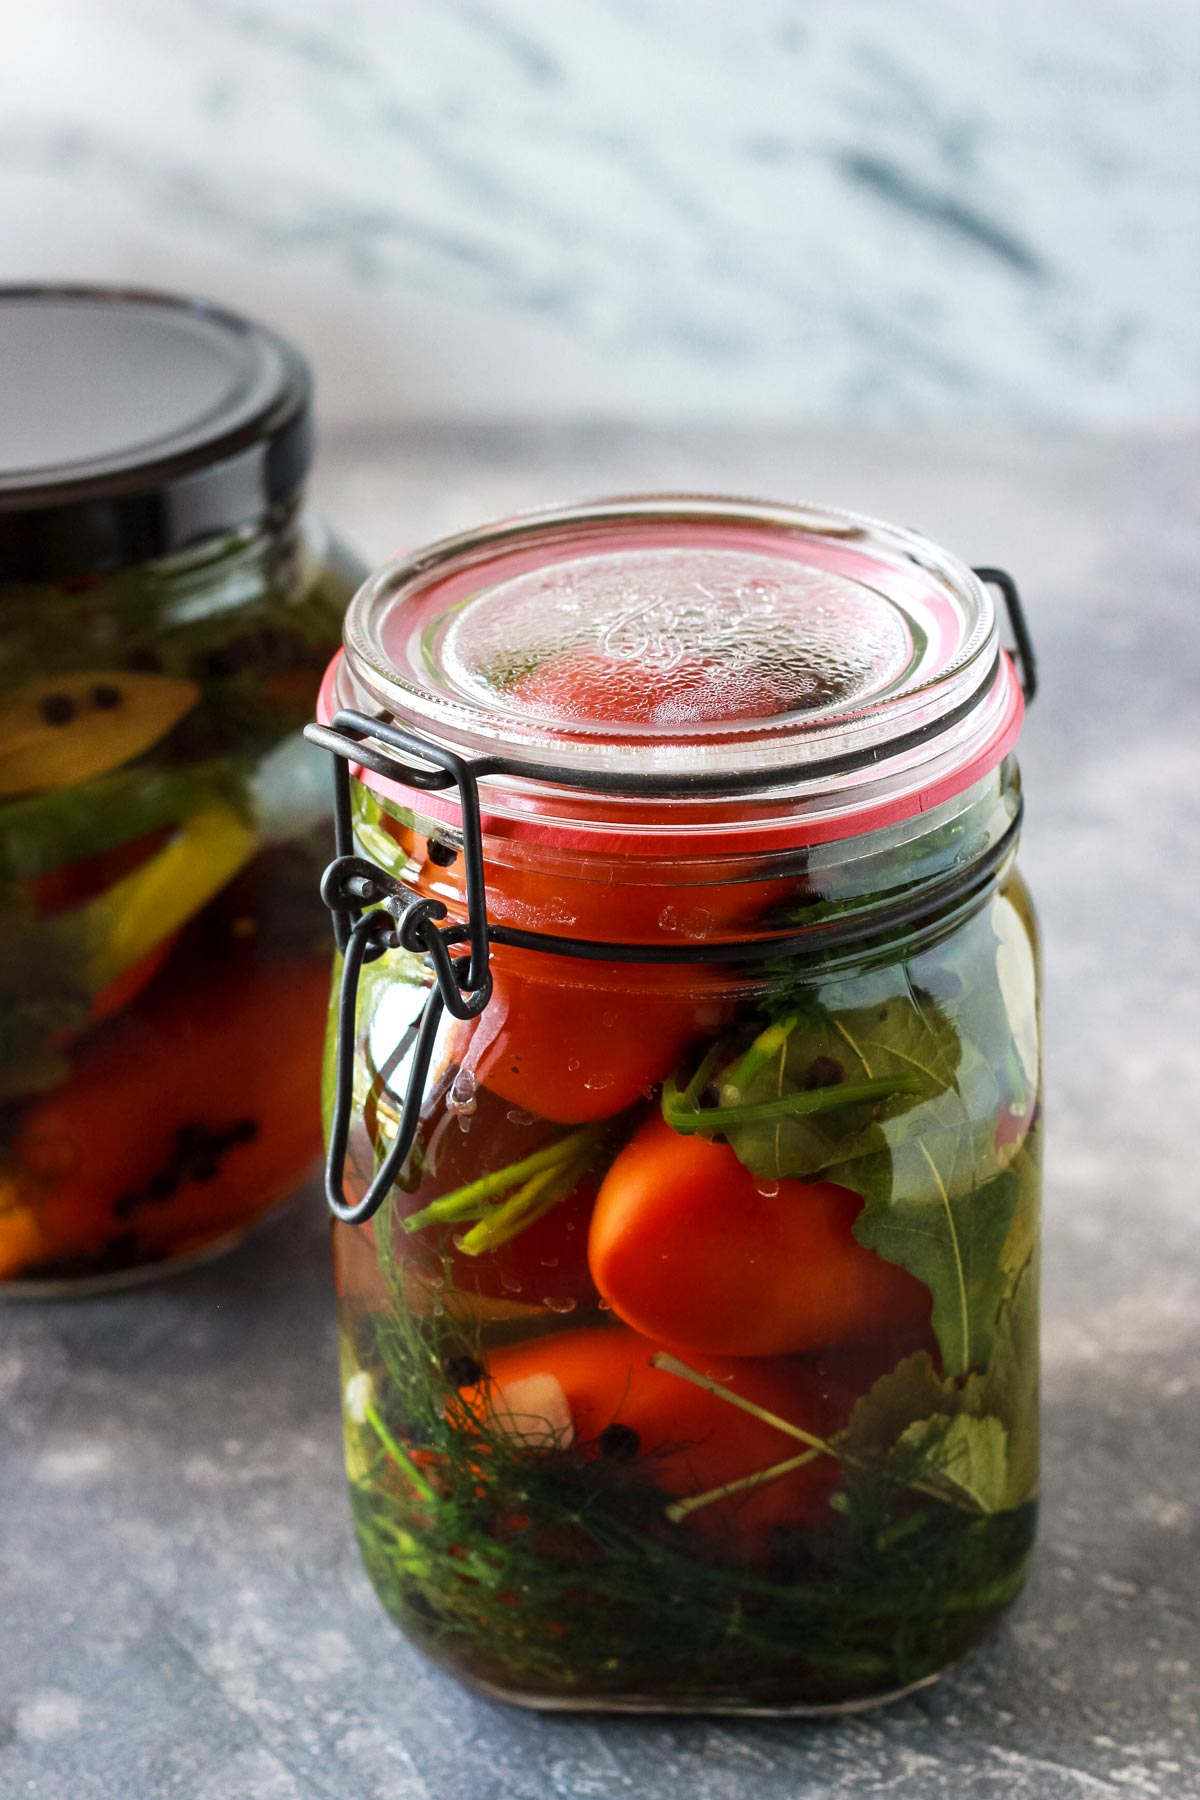 Pickled tomatoes in a jar.